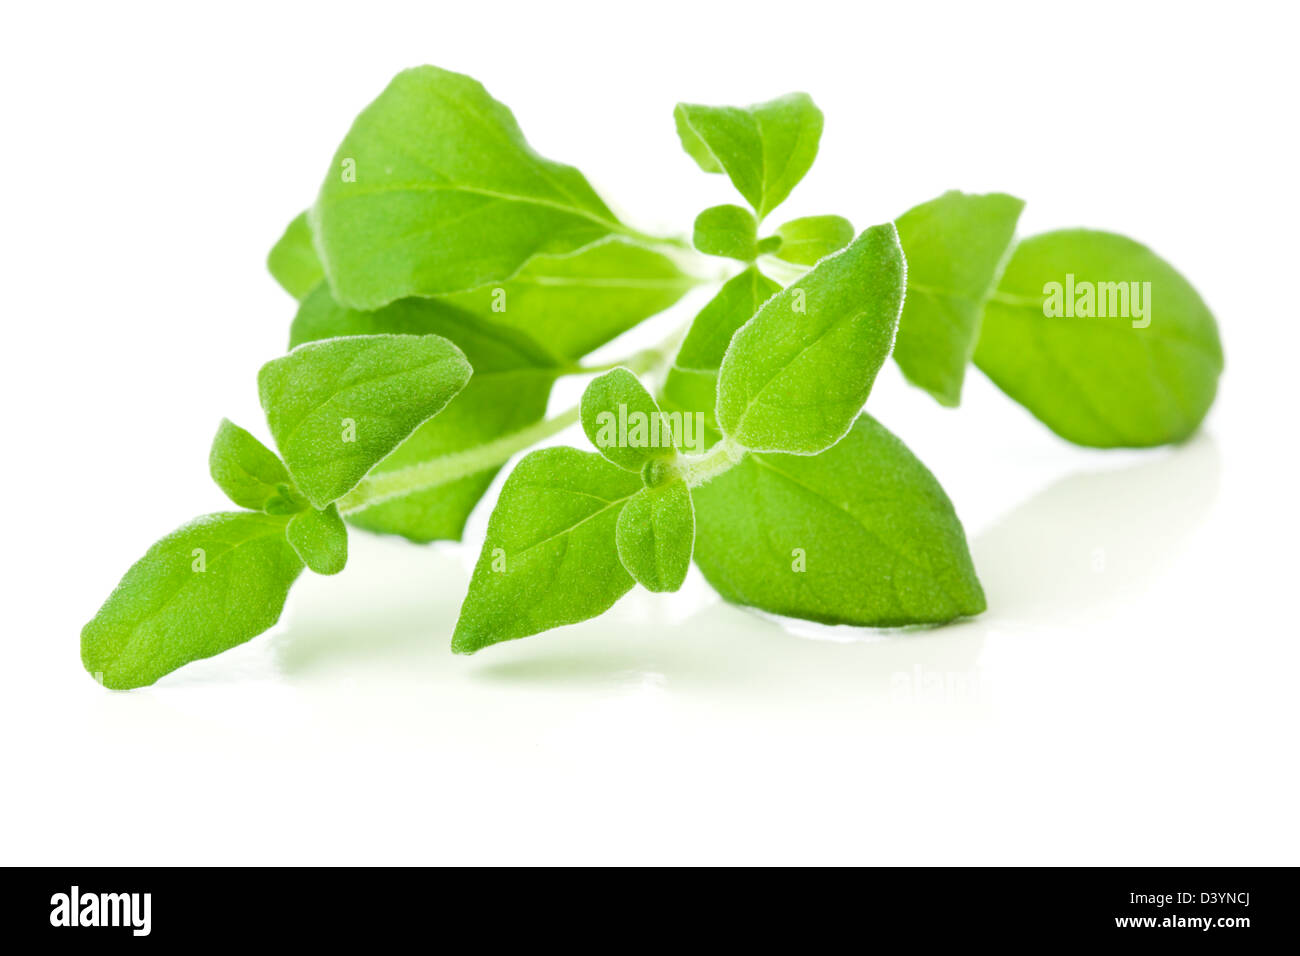 marjoram sprig on white background - Stock Image